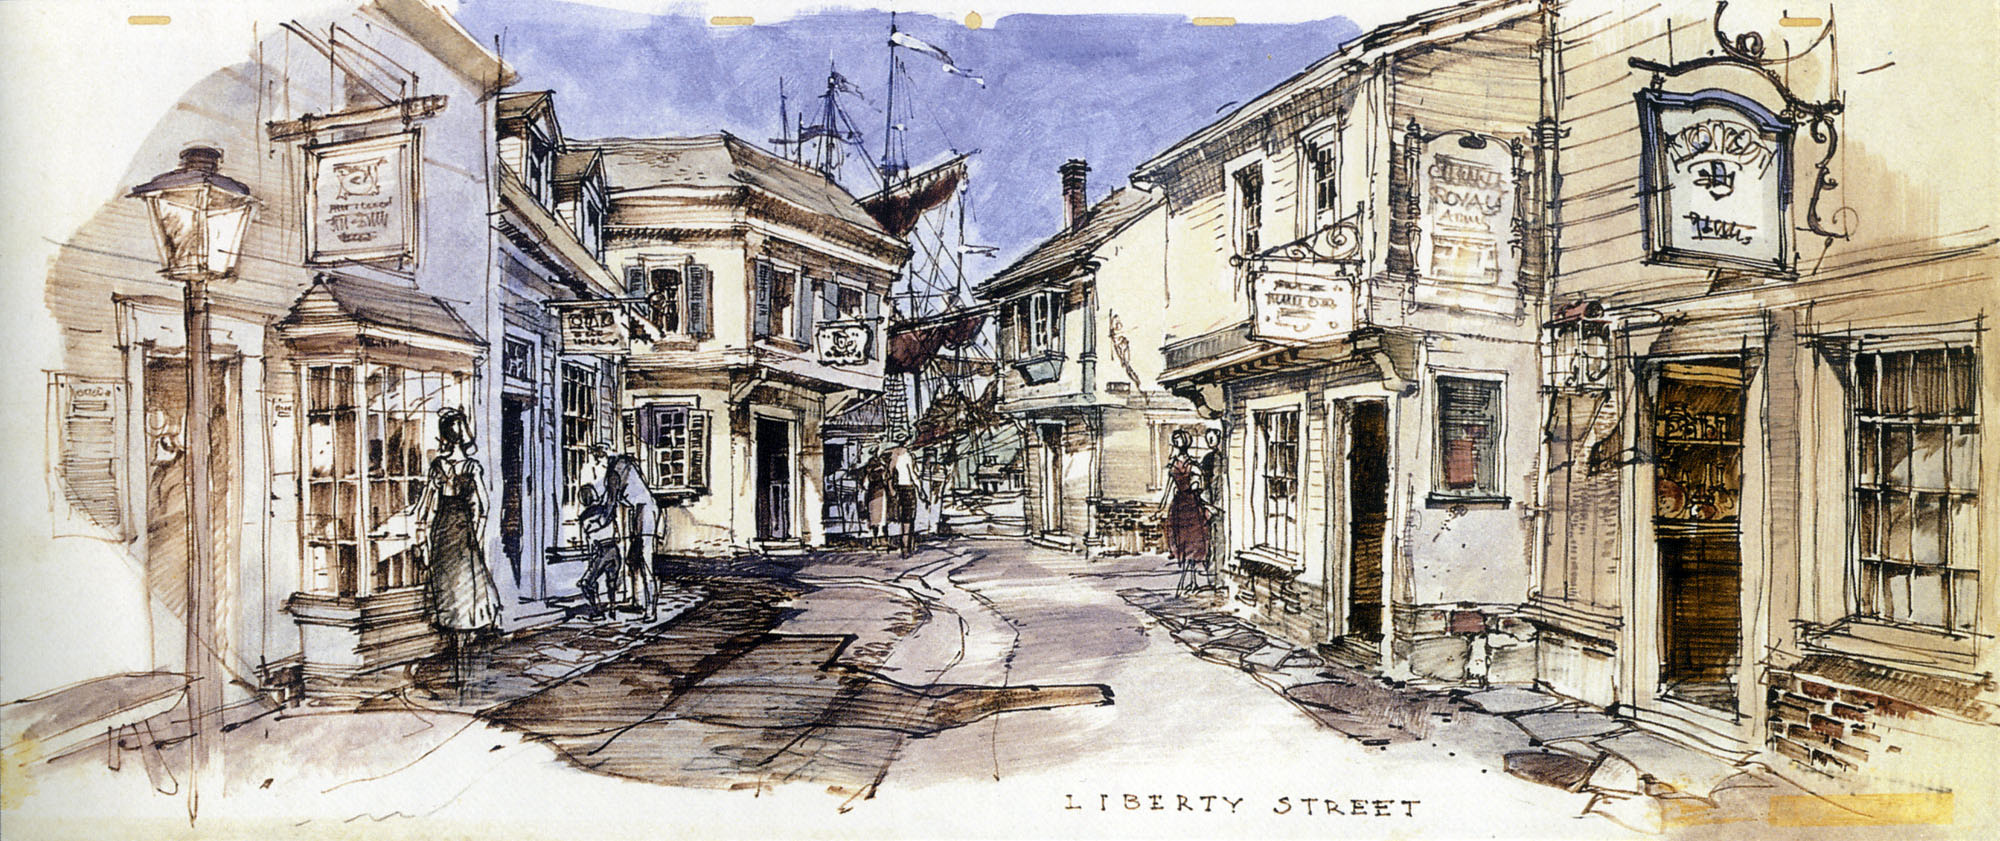 Concept sketch of Liberty Street, Magic Kingdom, Walt Disney World